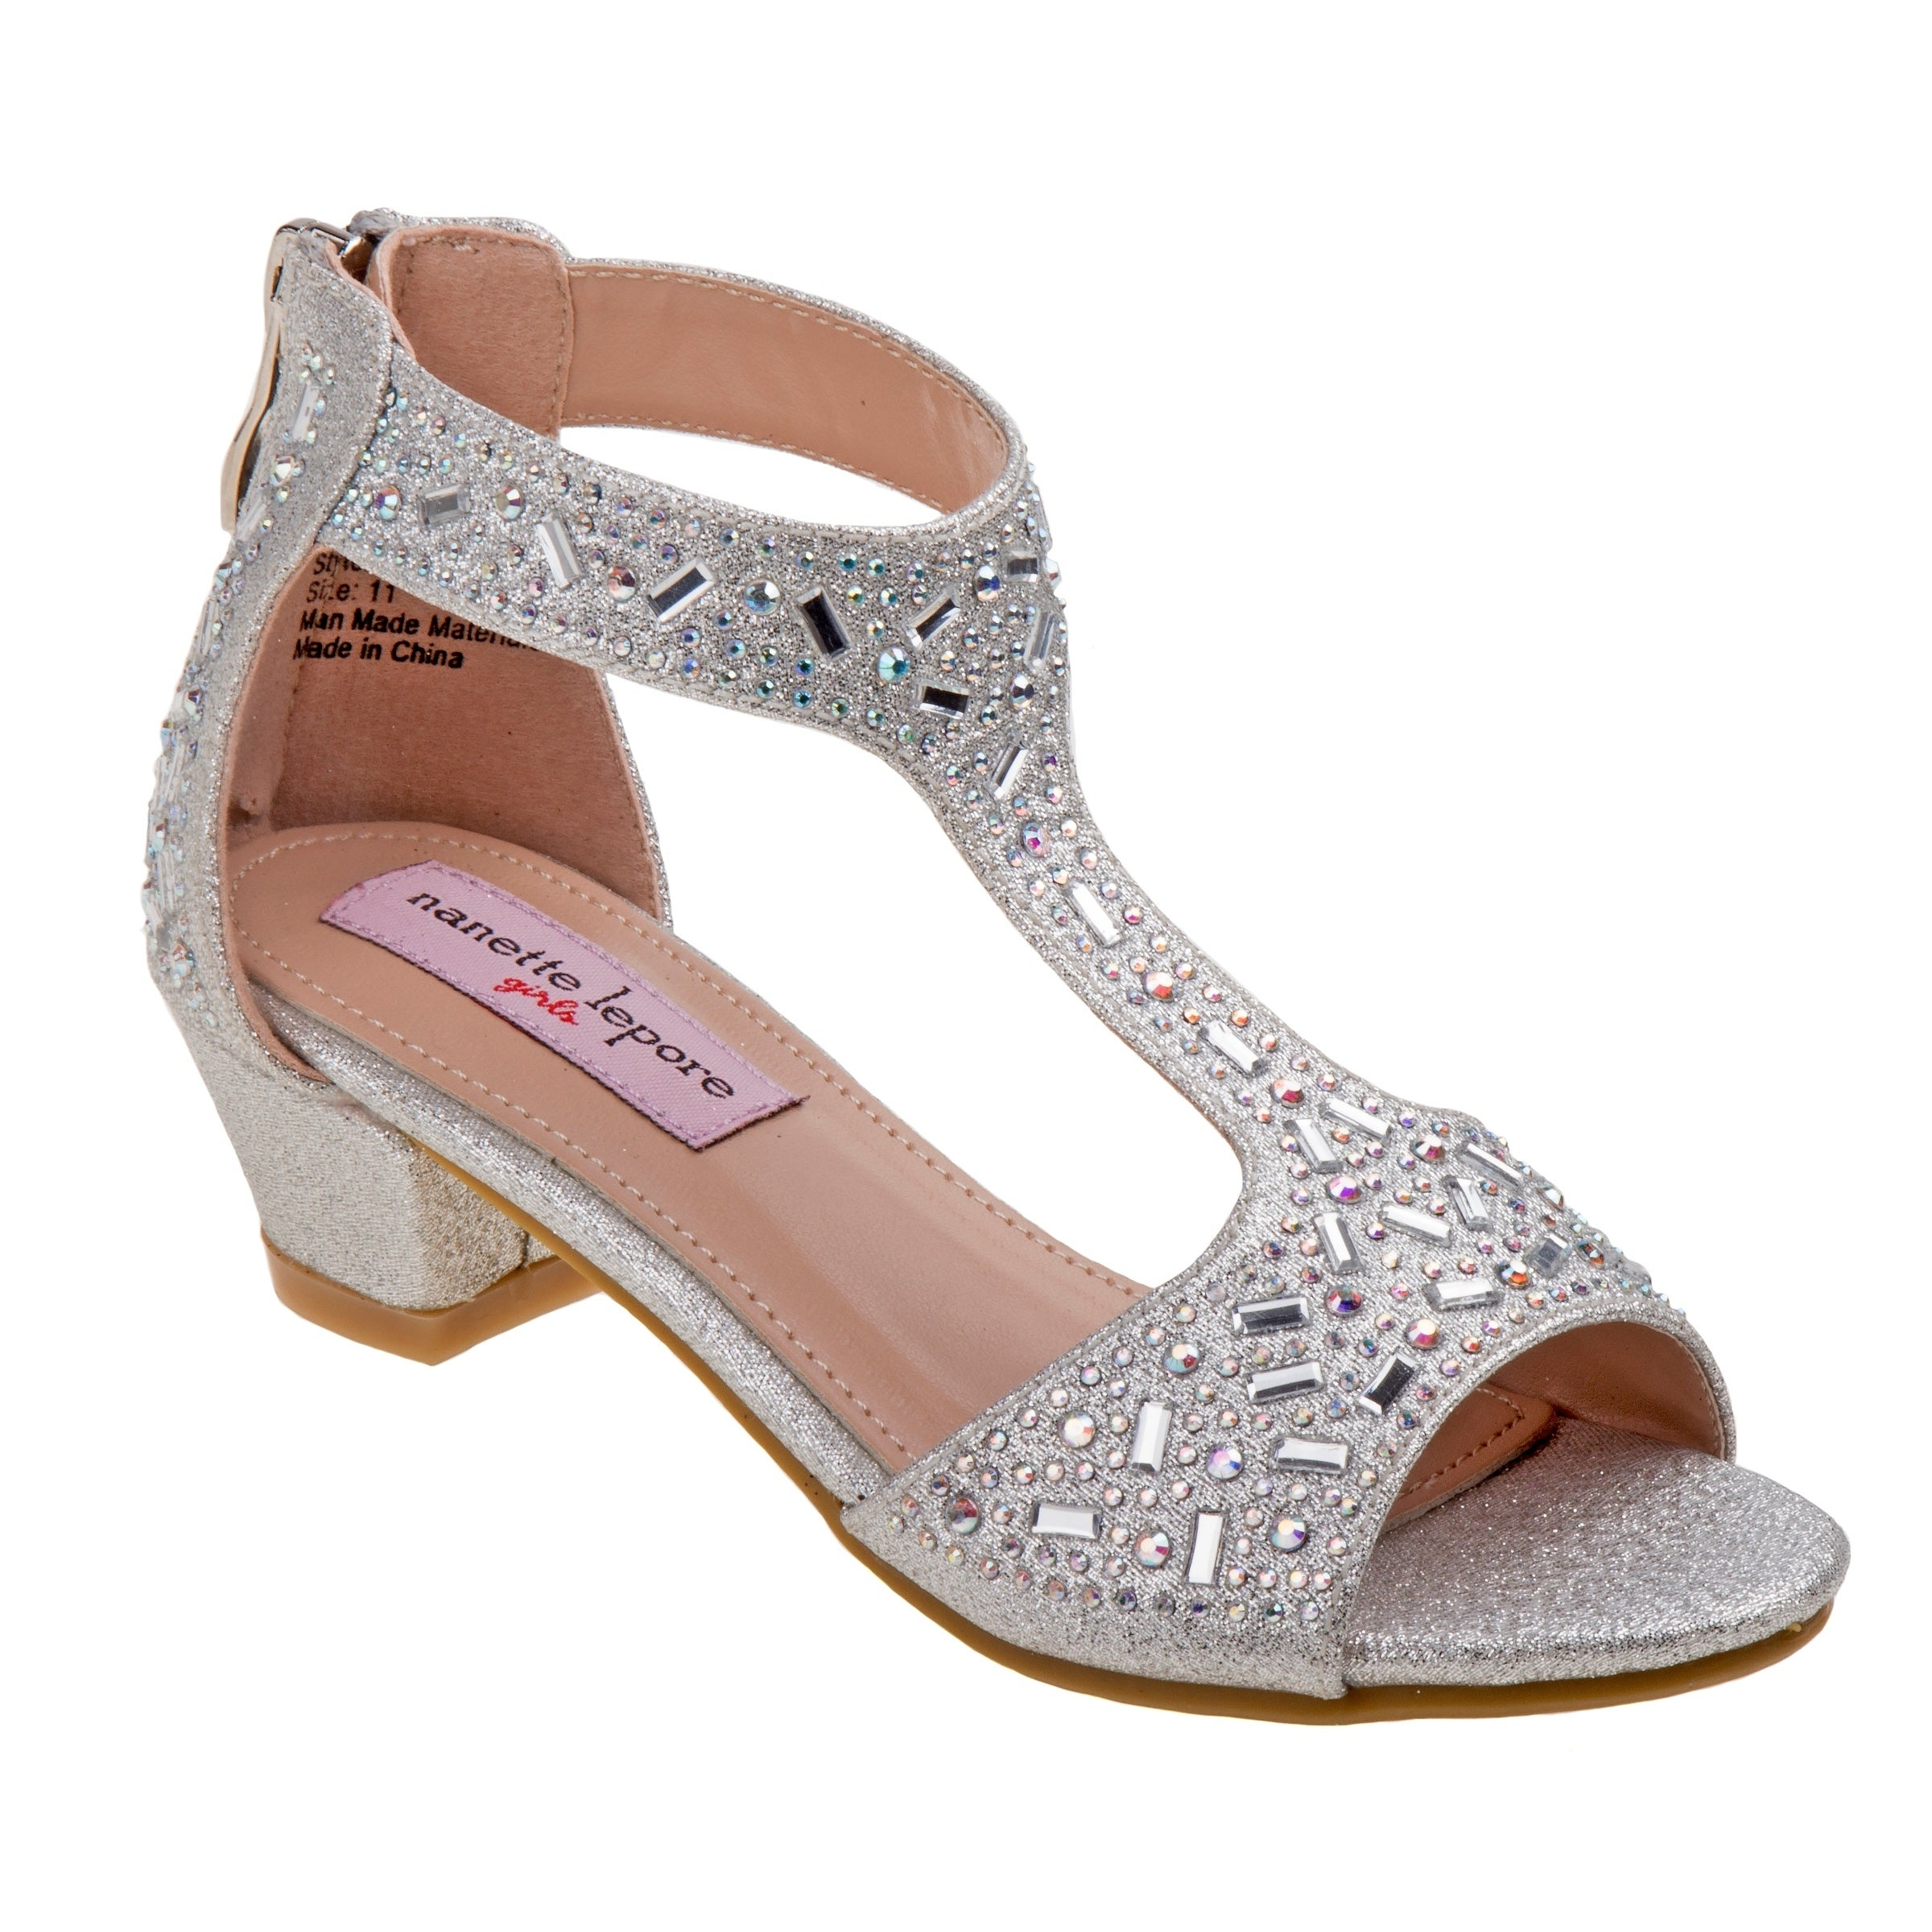 26f85a3c55b Shop Nanette Lepore Girl Dress Sandals - Free Shipping On Orders Over  45 -  Overstock - 21219381